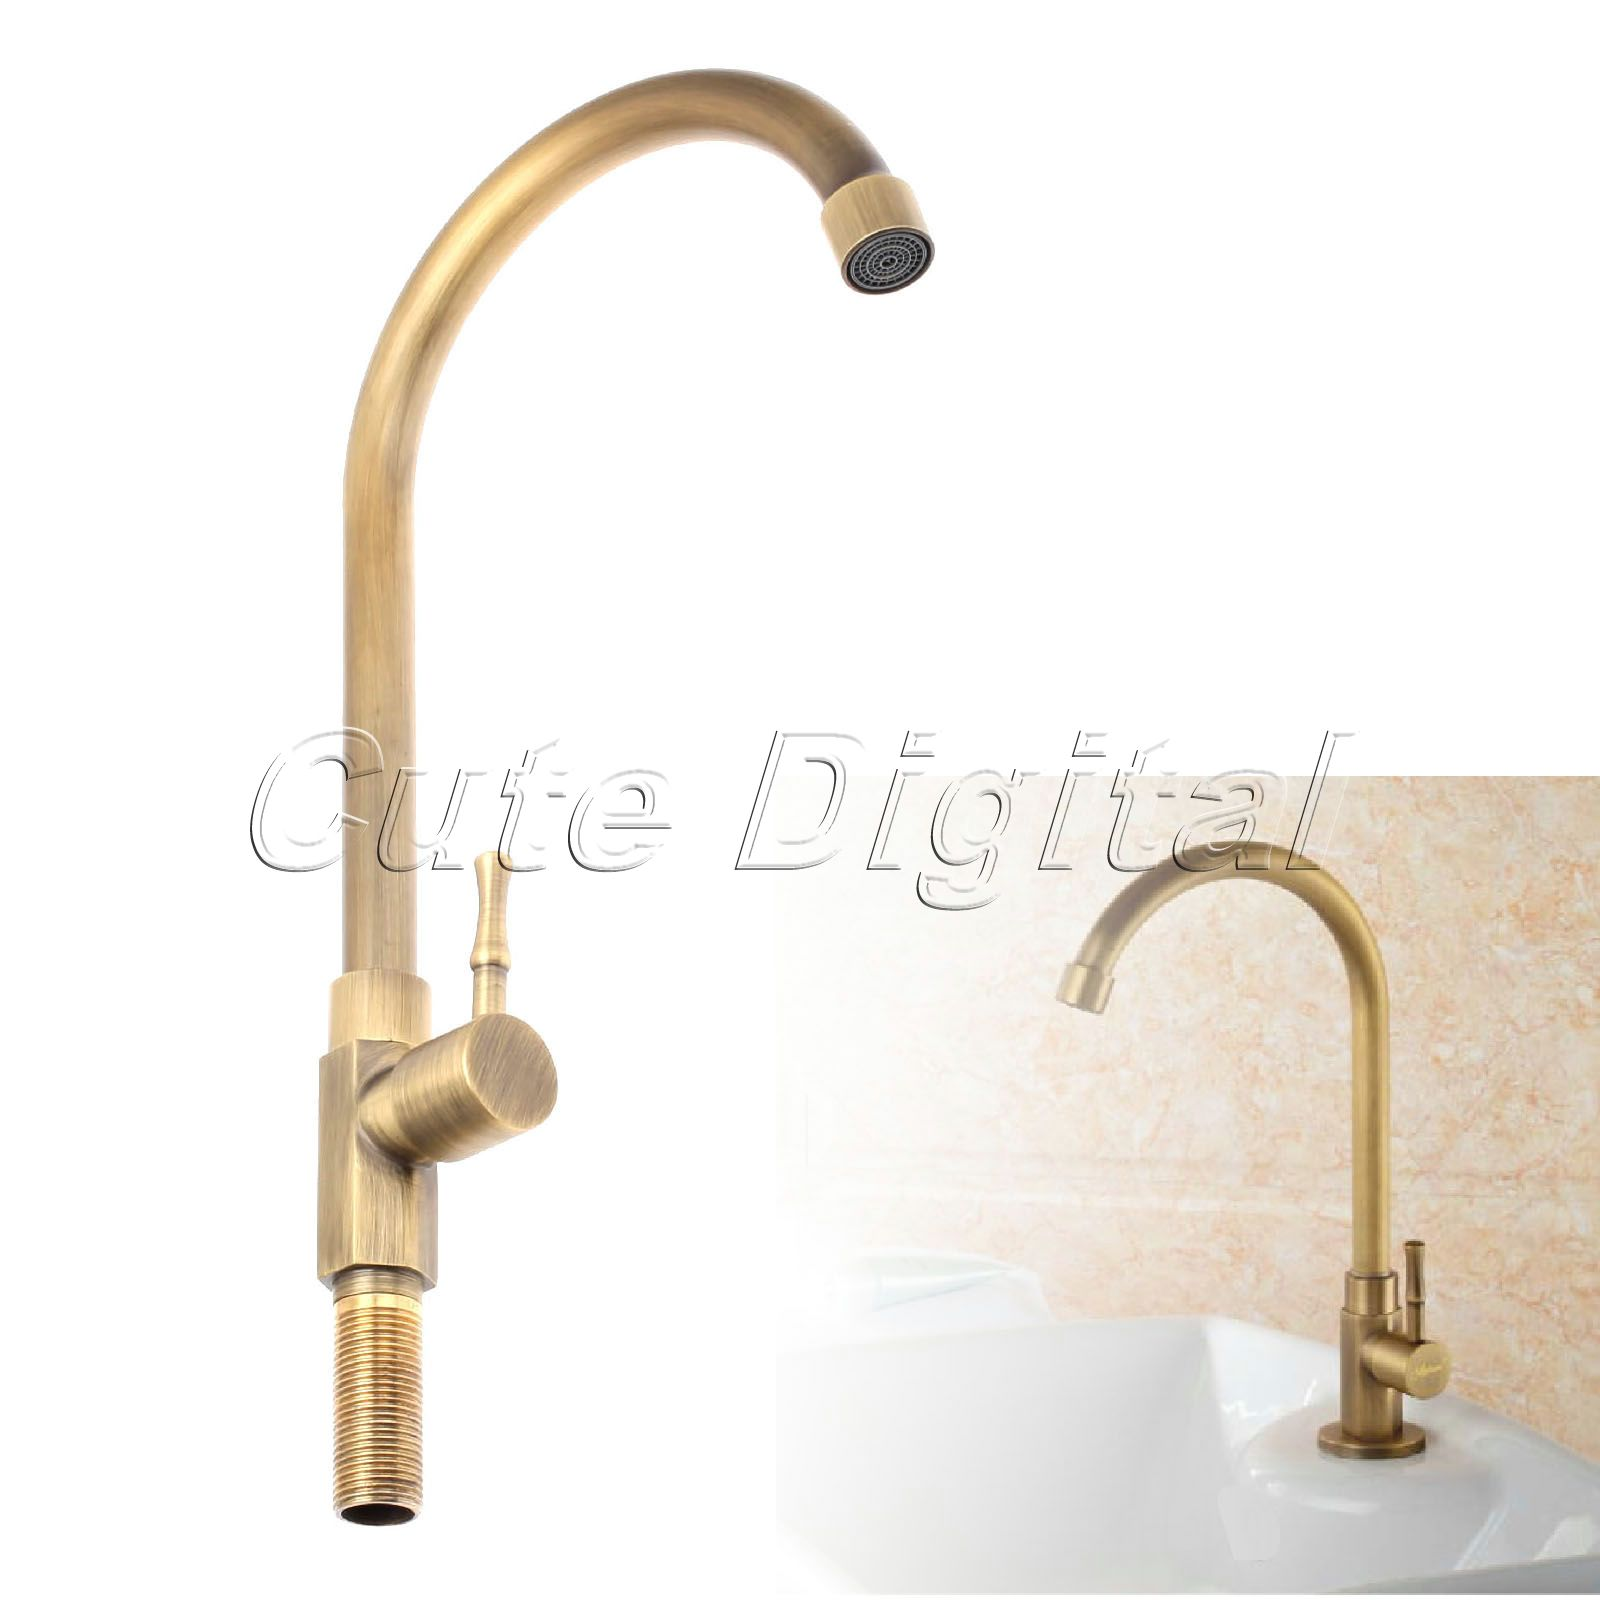 ФОТО Antique Brass Luxury Bathroom Sink Faucet Single Handle Swivel Spout Kitchen Faucets Vessel Sink Mixer Water Tap Basin Faucets